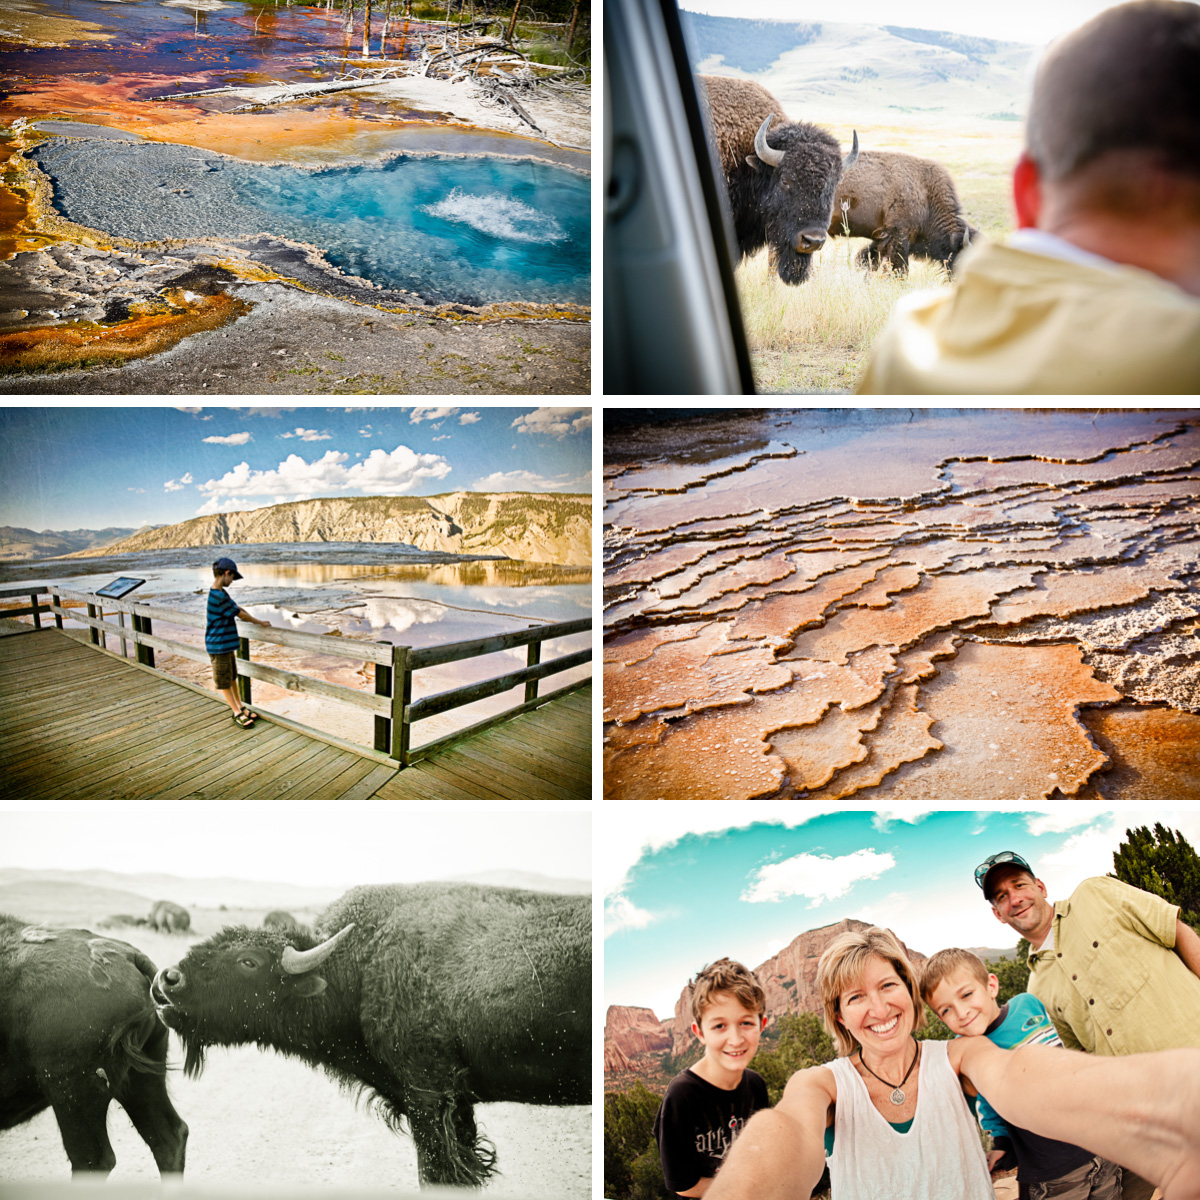 4-yellowstone roadtrip.jpg